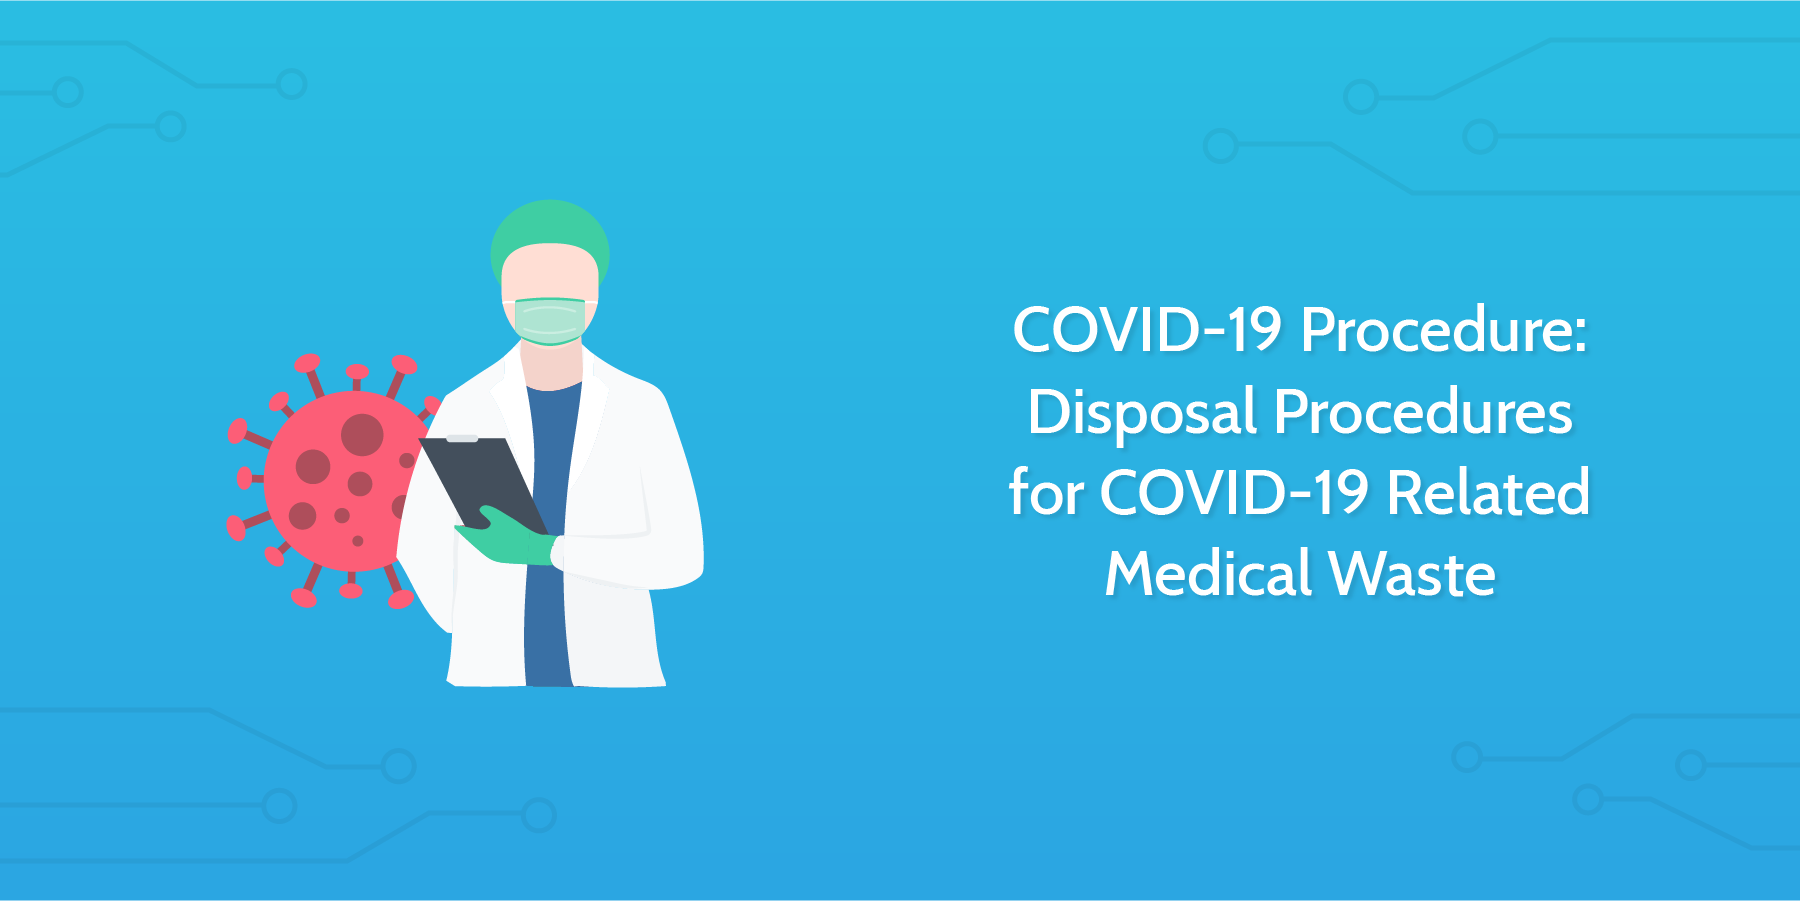 COVID-19 Procedure: Disposal Procedures for COVID-19 Related Medical Waste